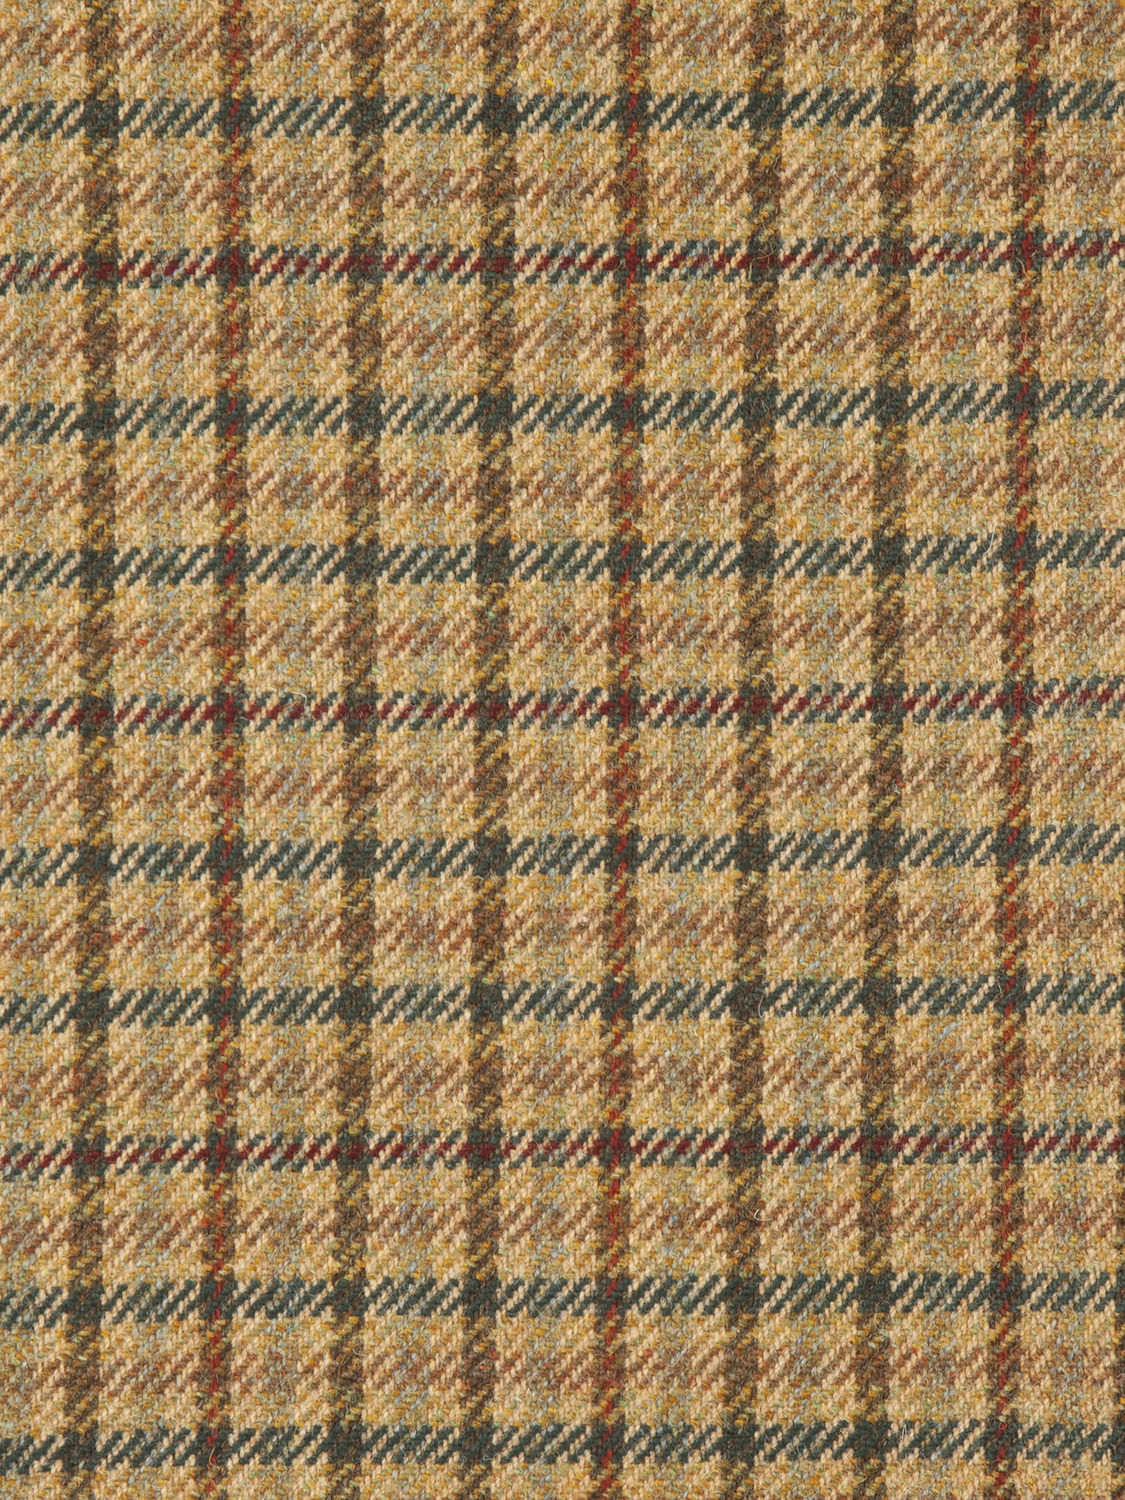 Upholstery Fabric Plaid Wool County Tweed Holland Sherry